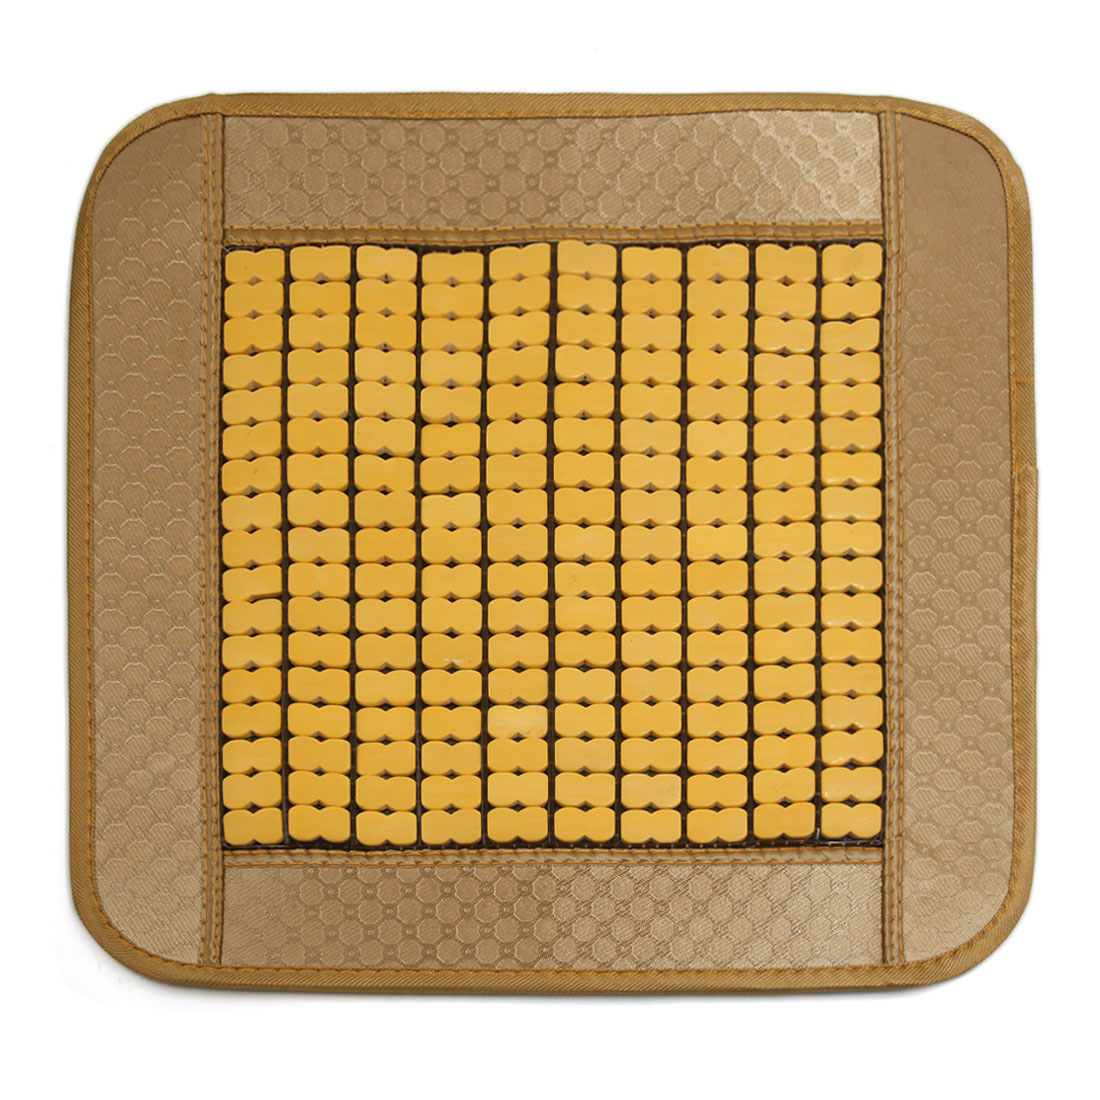 Summer Bamboo Wooden Comfort Car Seat Cushion Pad Breathable Cover Mat Beige Yellow